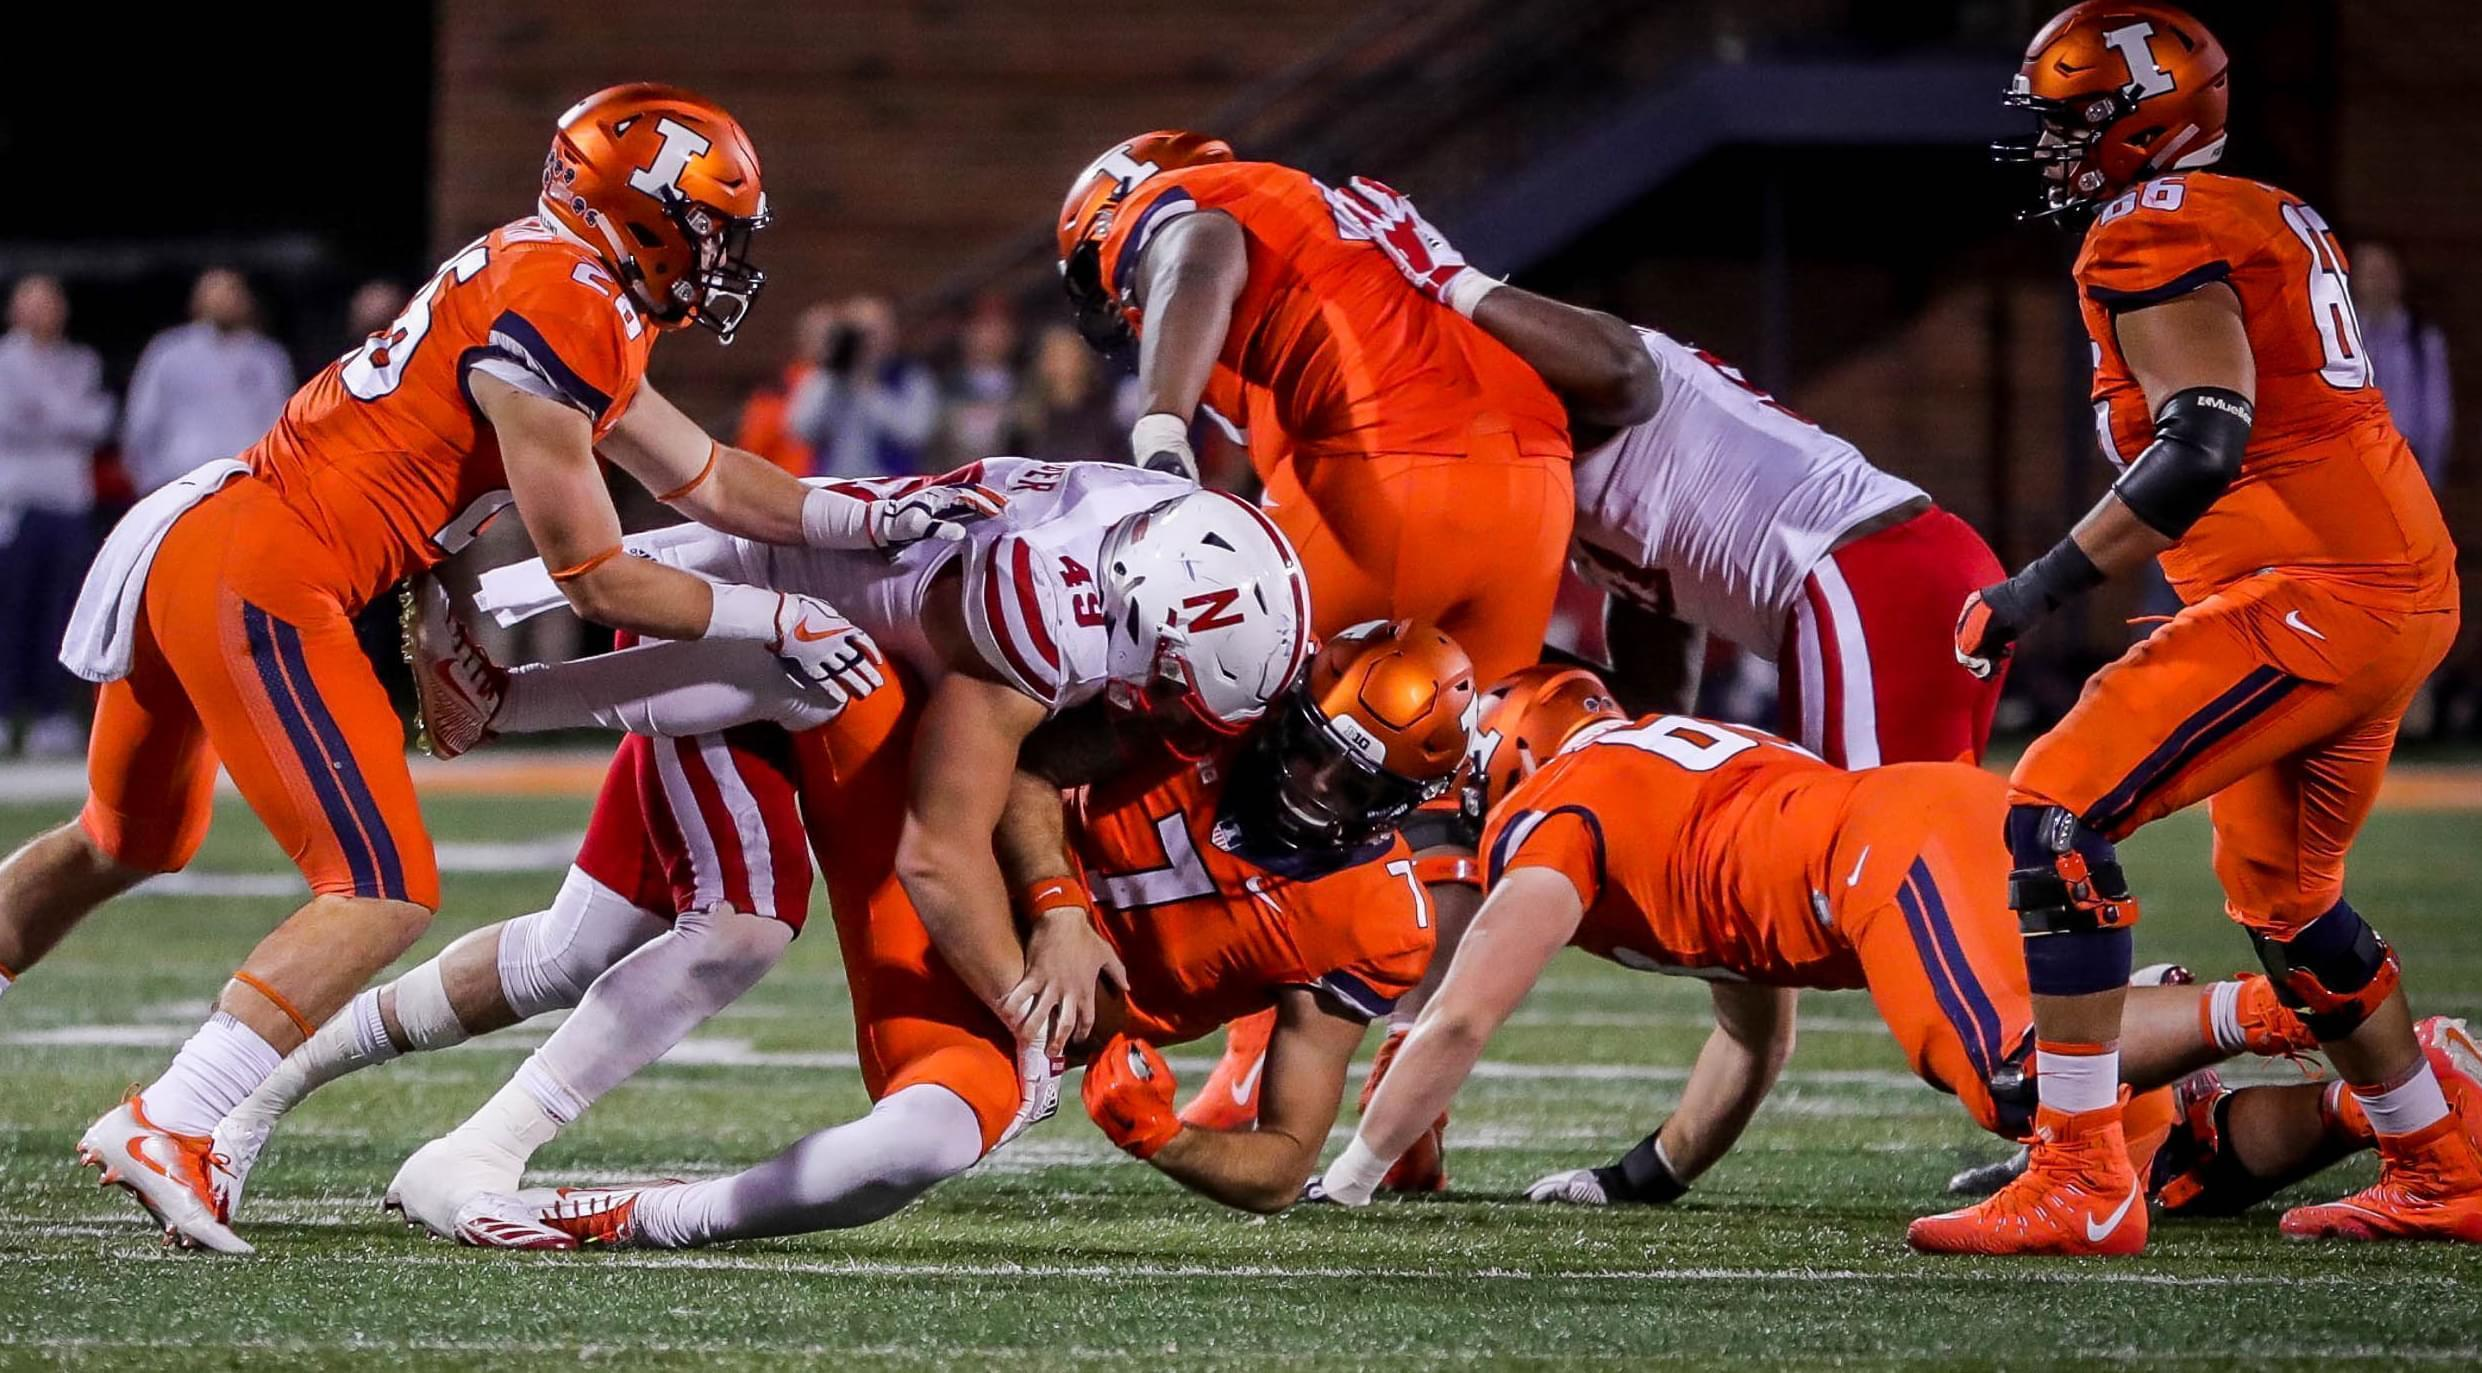 cornhuskers trample illini football 28 6 news local state